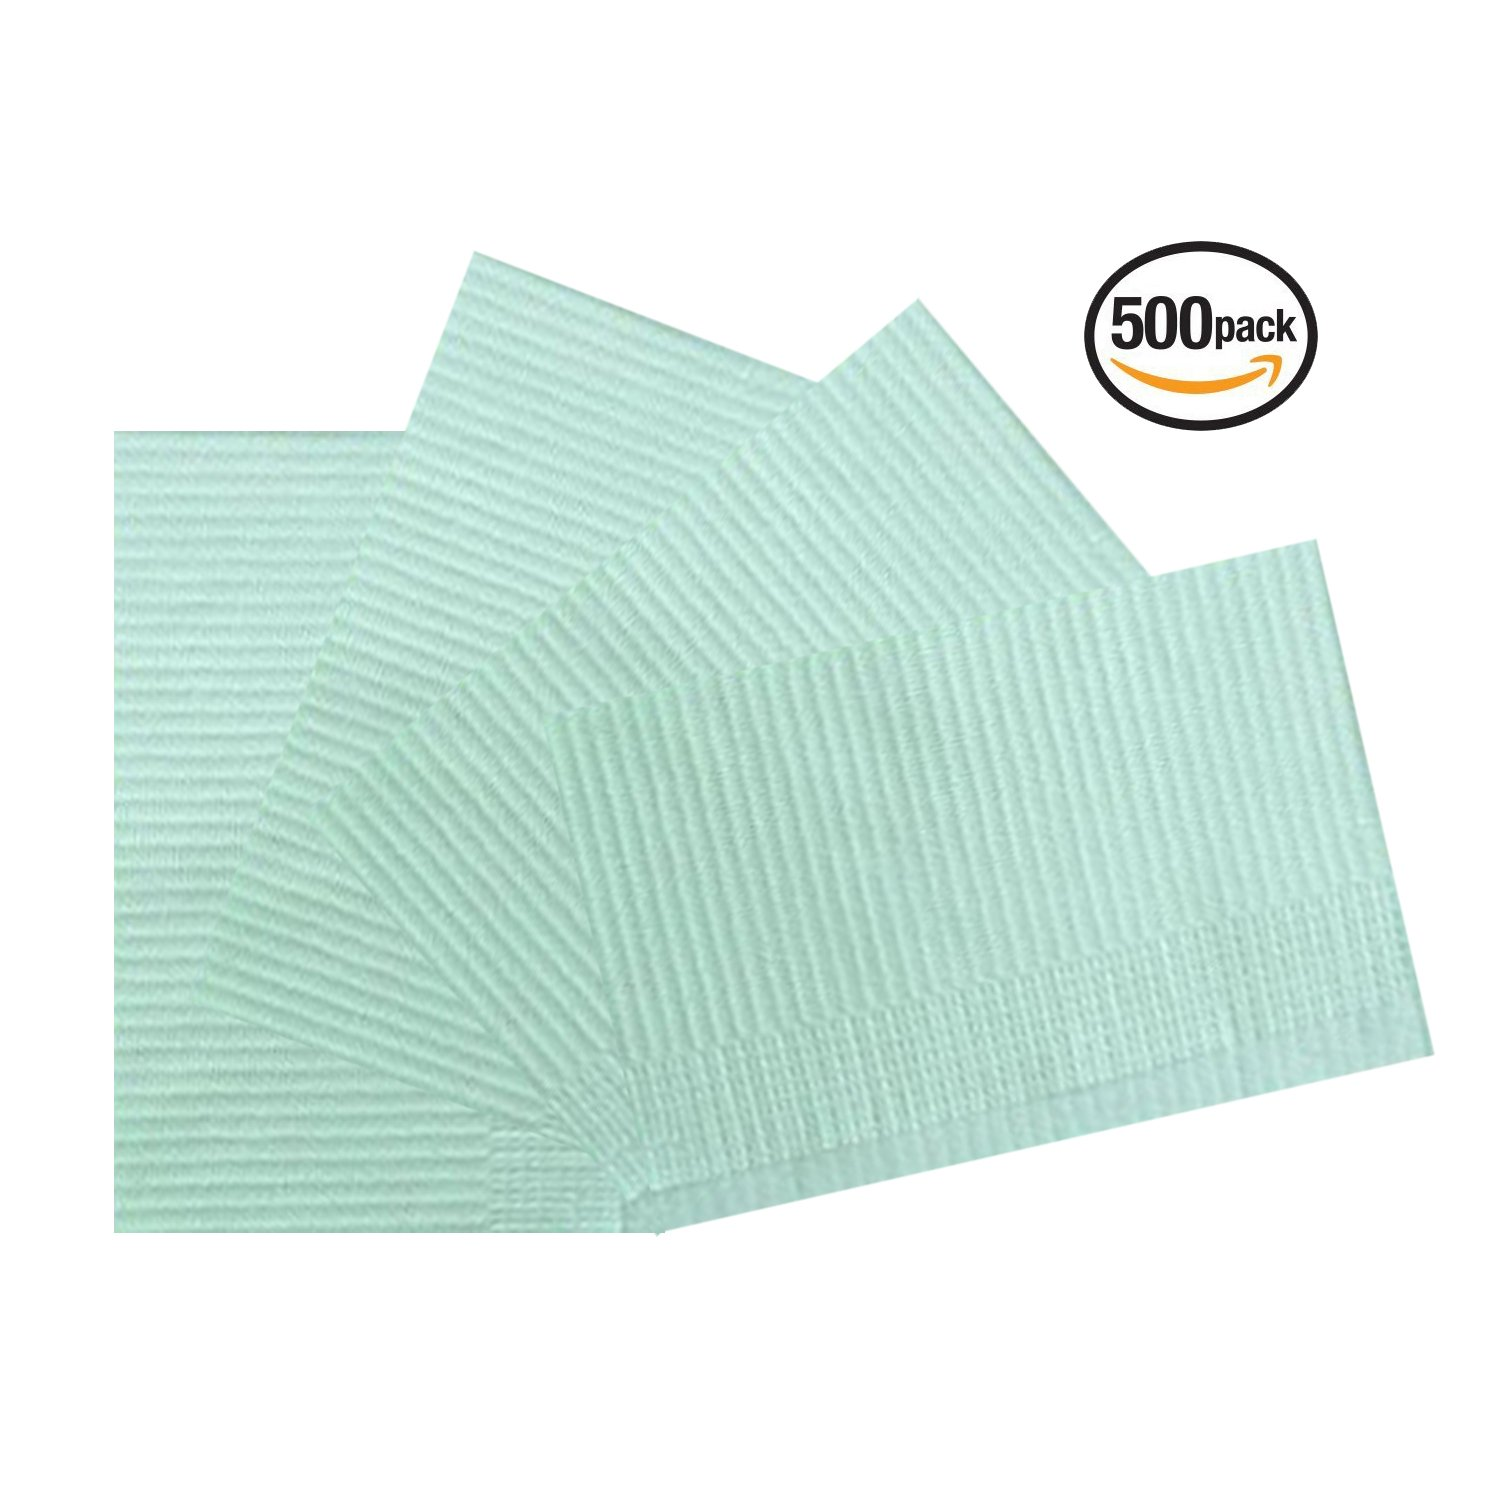 Vivid OnceBib Disposable, Patient Bib, 2 Ply paper and 1 Poly Backing, 13''x18'', Set of 500 (Green)